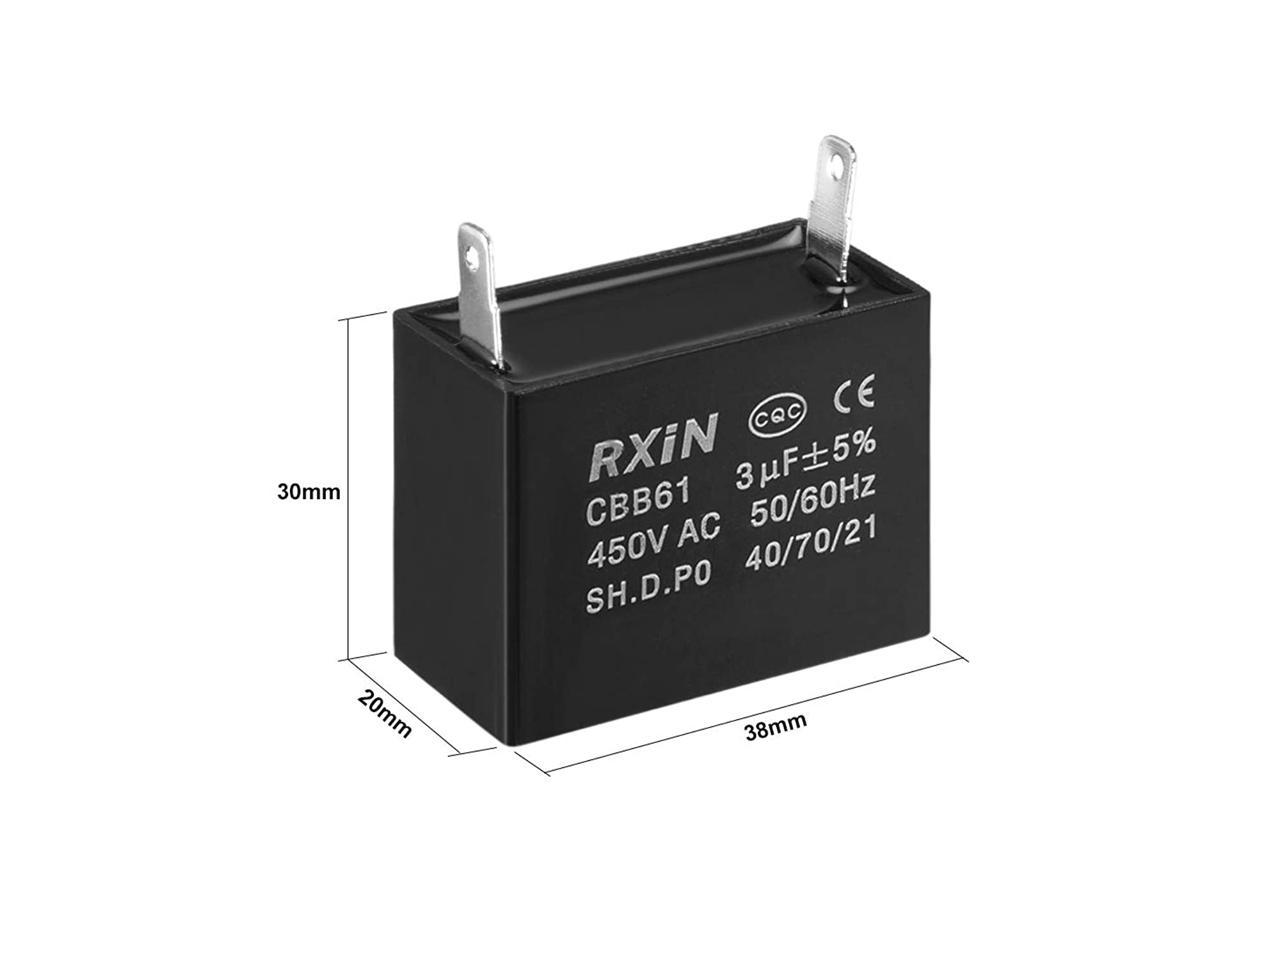 Uxcell Cbb61 Run Capacitor 450v Ac 3uf Single Insert